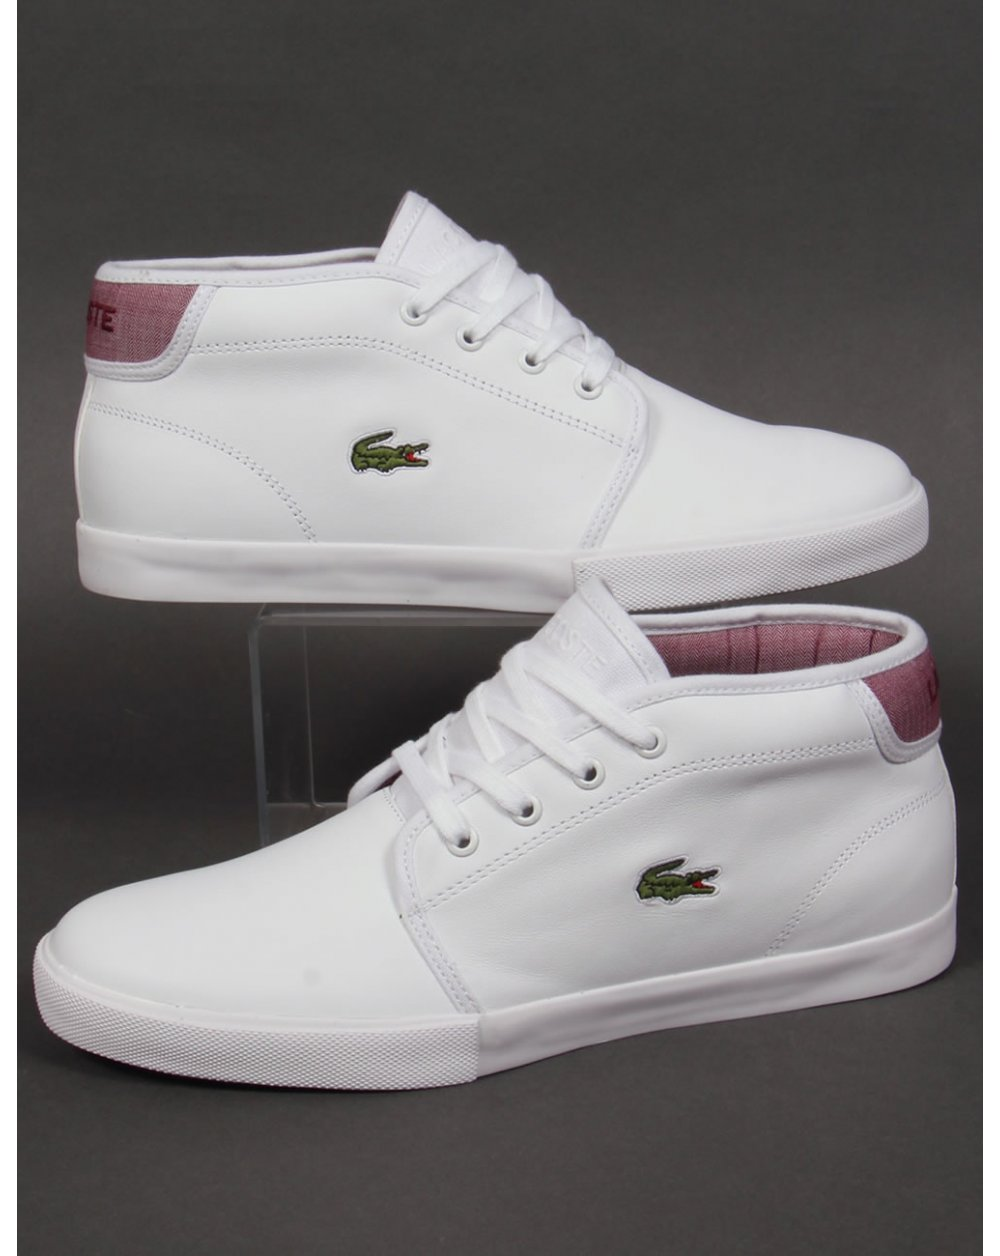 18aa0abf540cb Lacoste Lacoste Ampthill Leather Trainers White